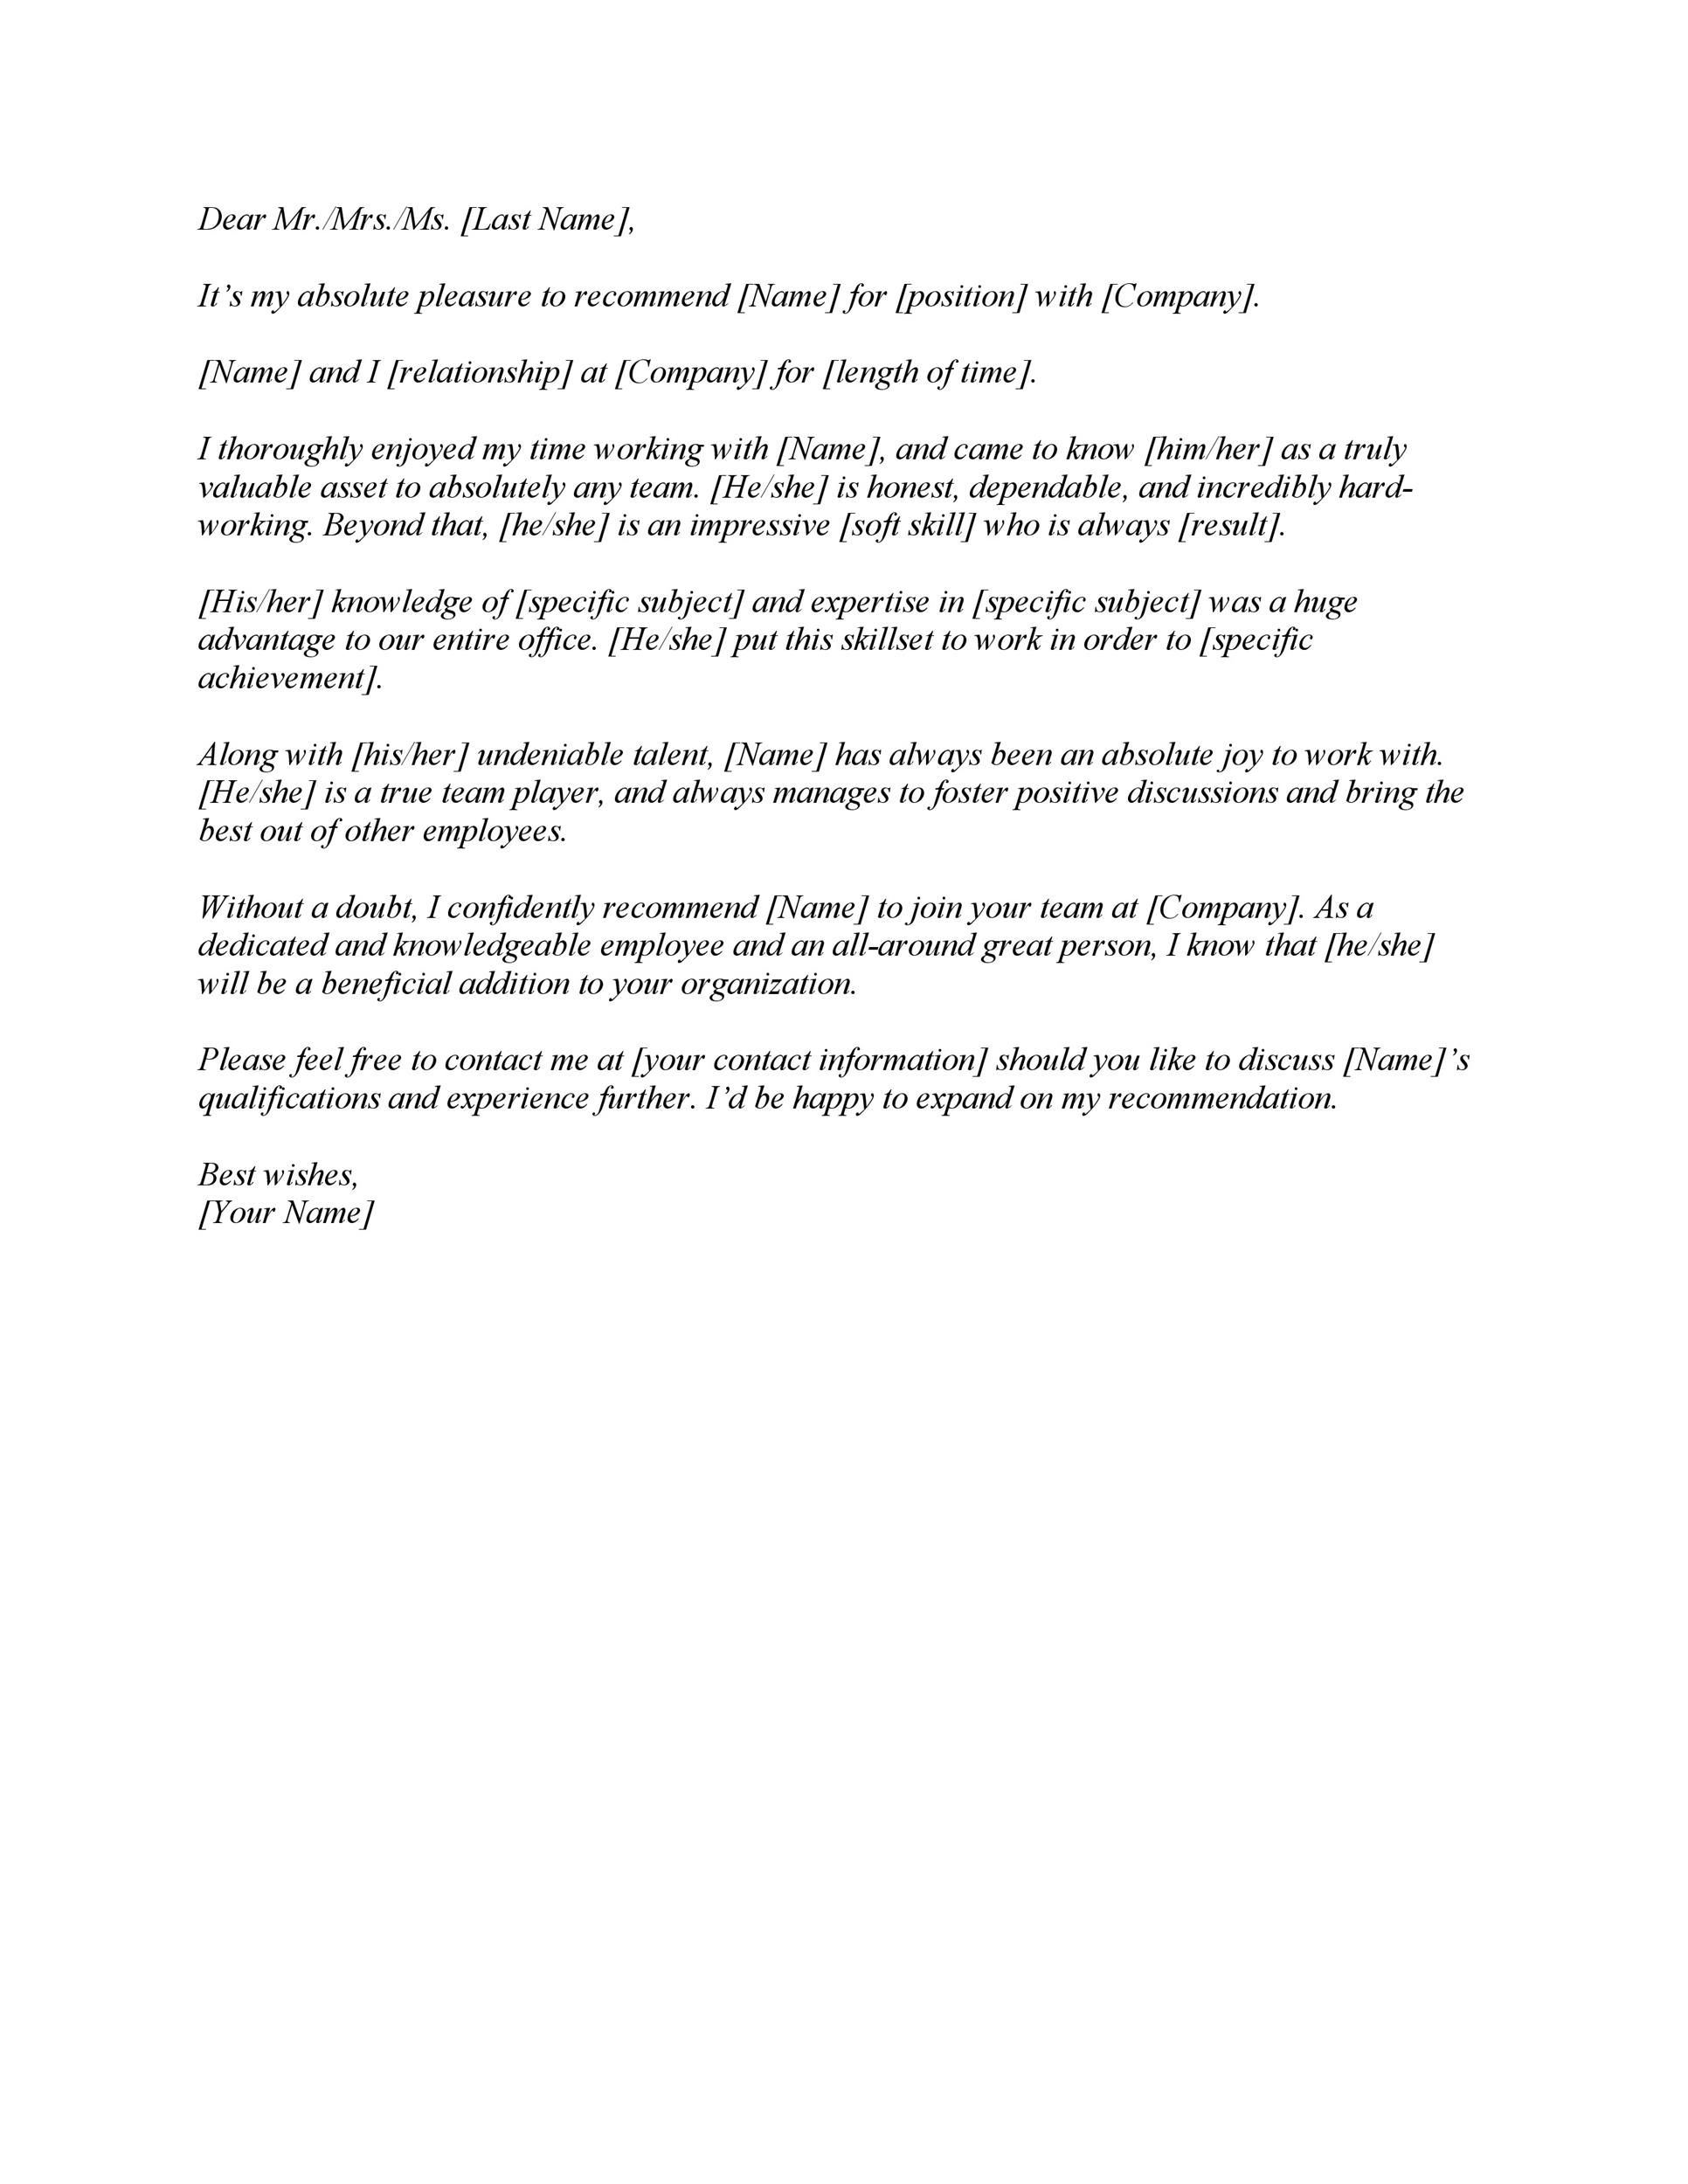 004 Amazing Letter Of Recommendation Template Word Design  General UkFull